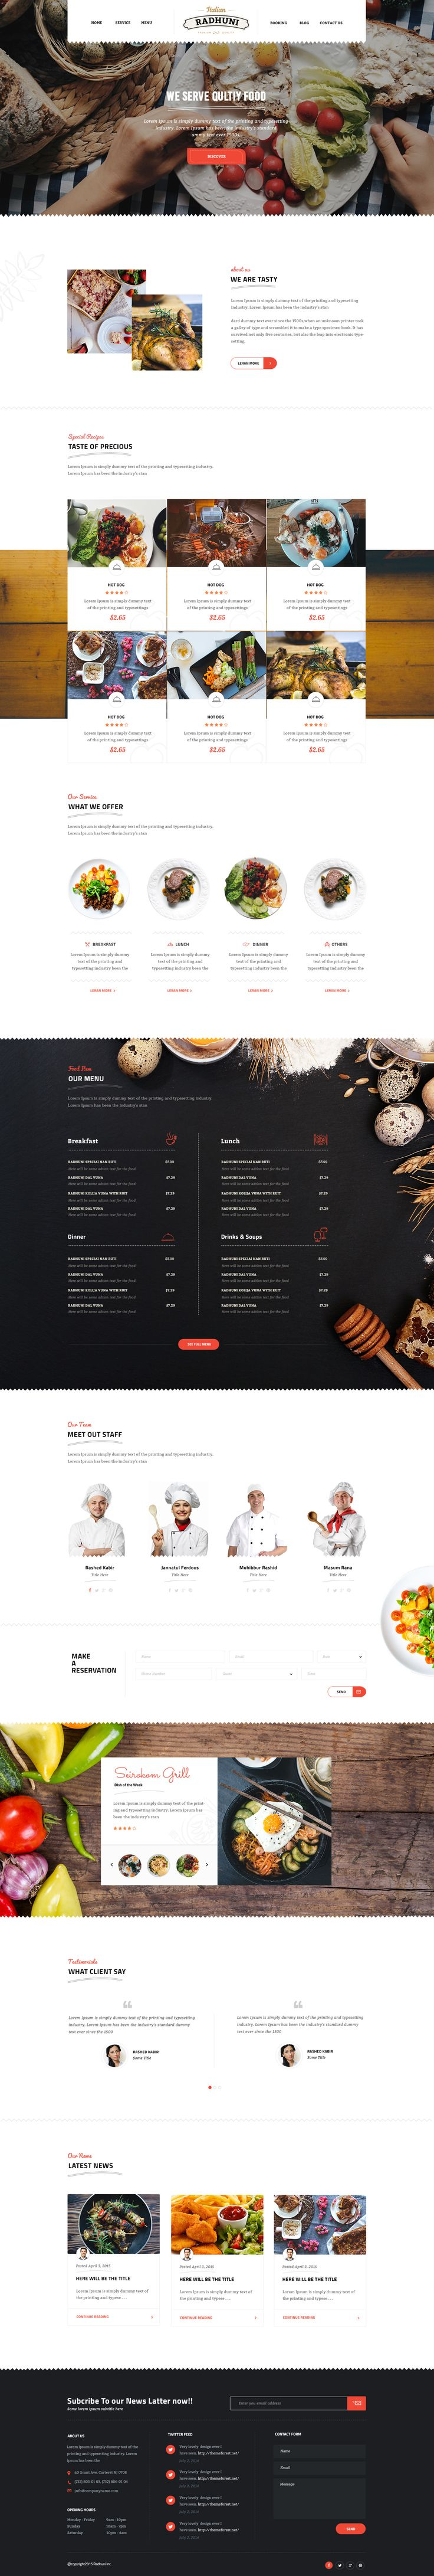 Italian Radhuni Food & Resturant HTML Template #asian food #bakery #burger #chef #cooking #$15